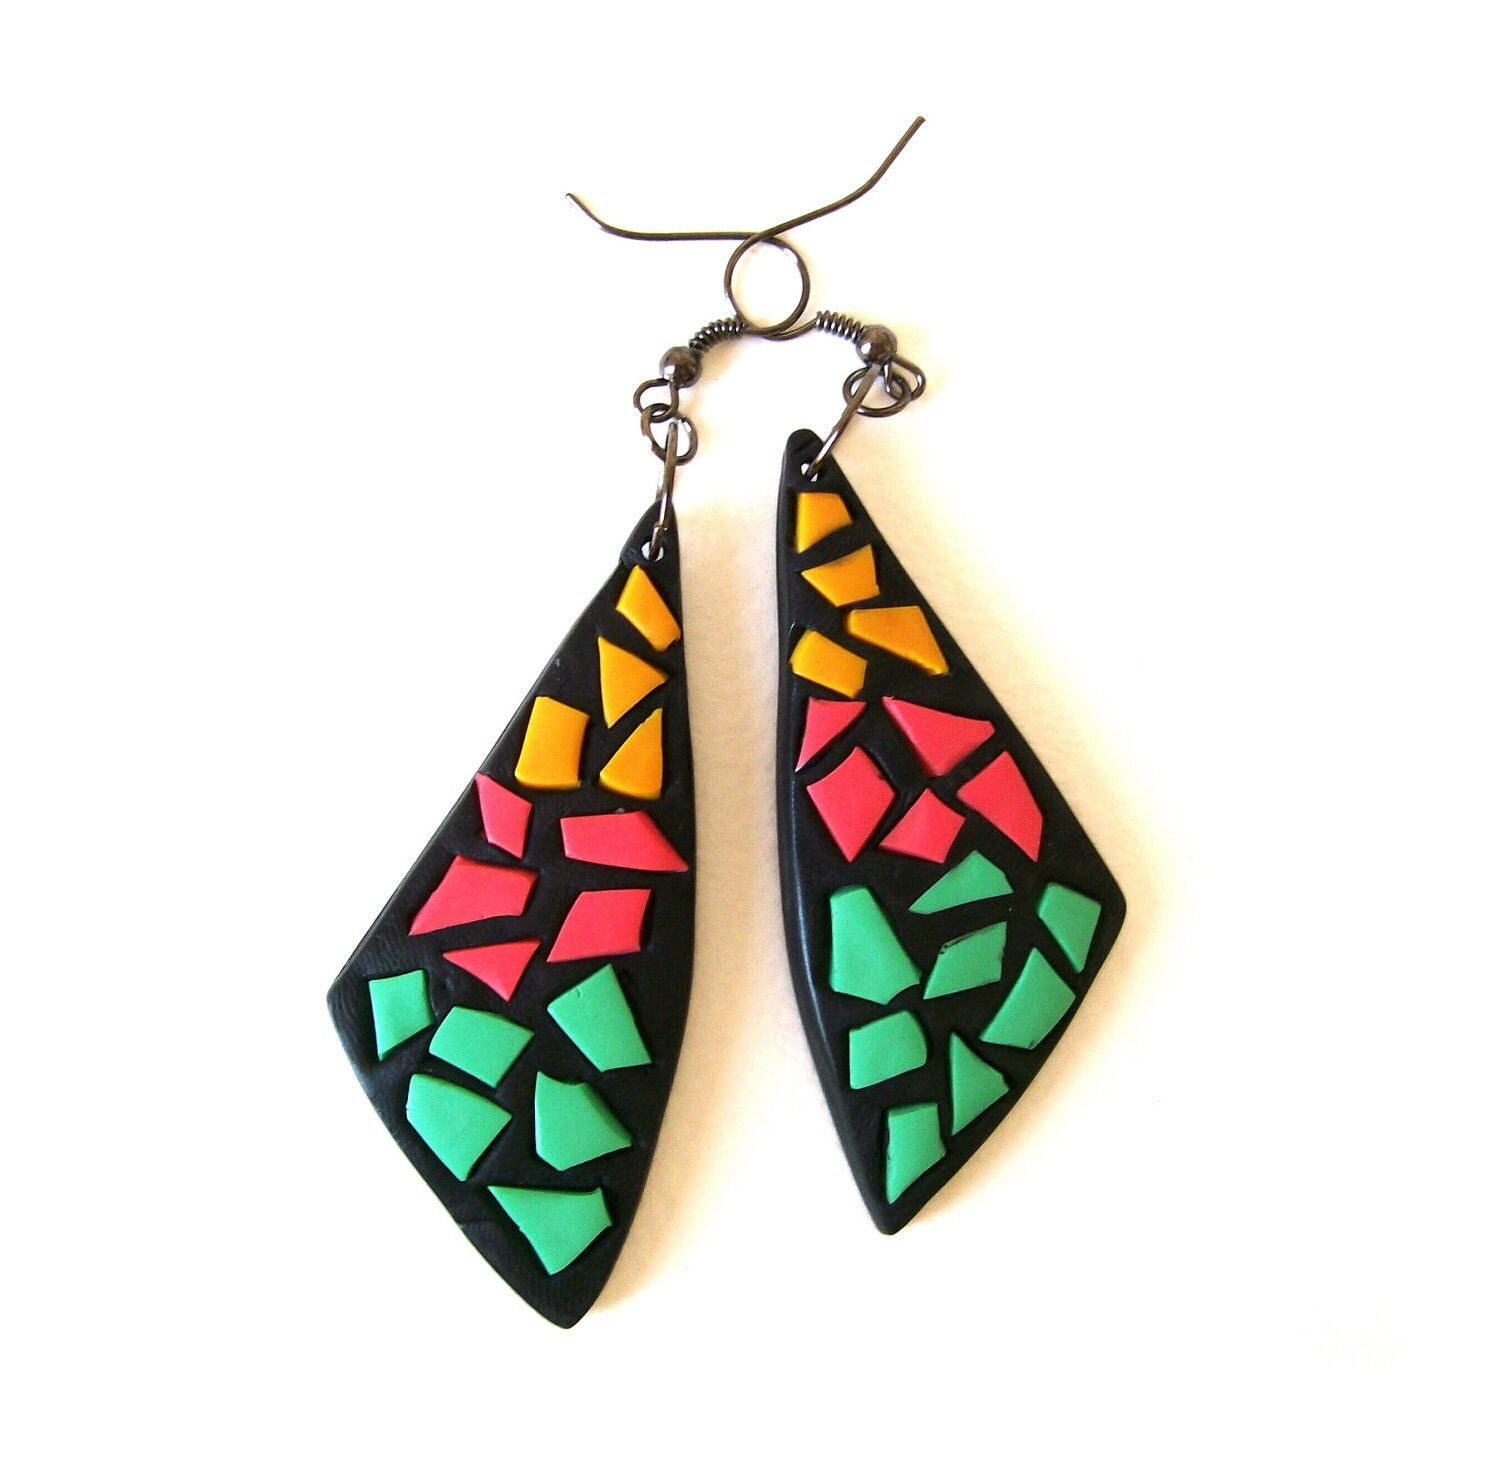 "Colorful mosaic dangle earrings Neon Spring collection bold&quirky polymer clay earrings ""The Moth Sail""  EuropeanStreetTeam, BeadsTeam - HunkiiDorii"